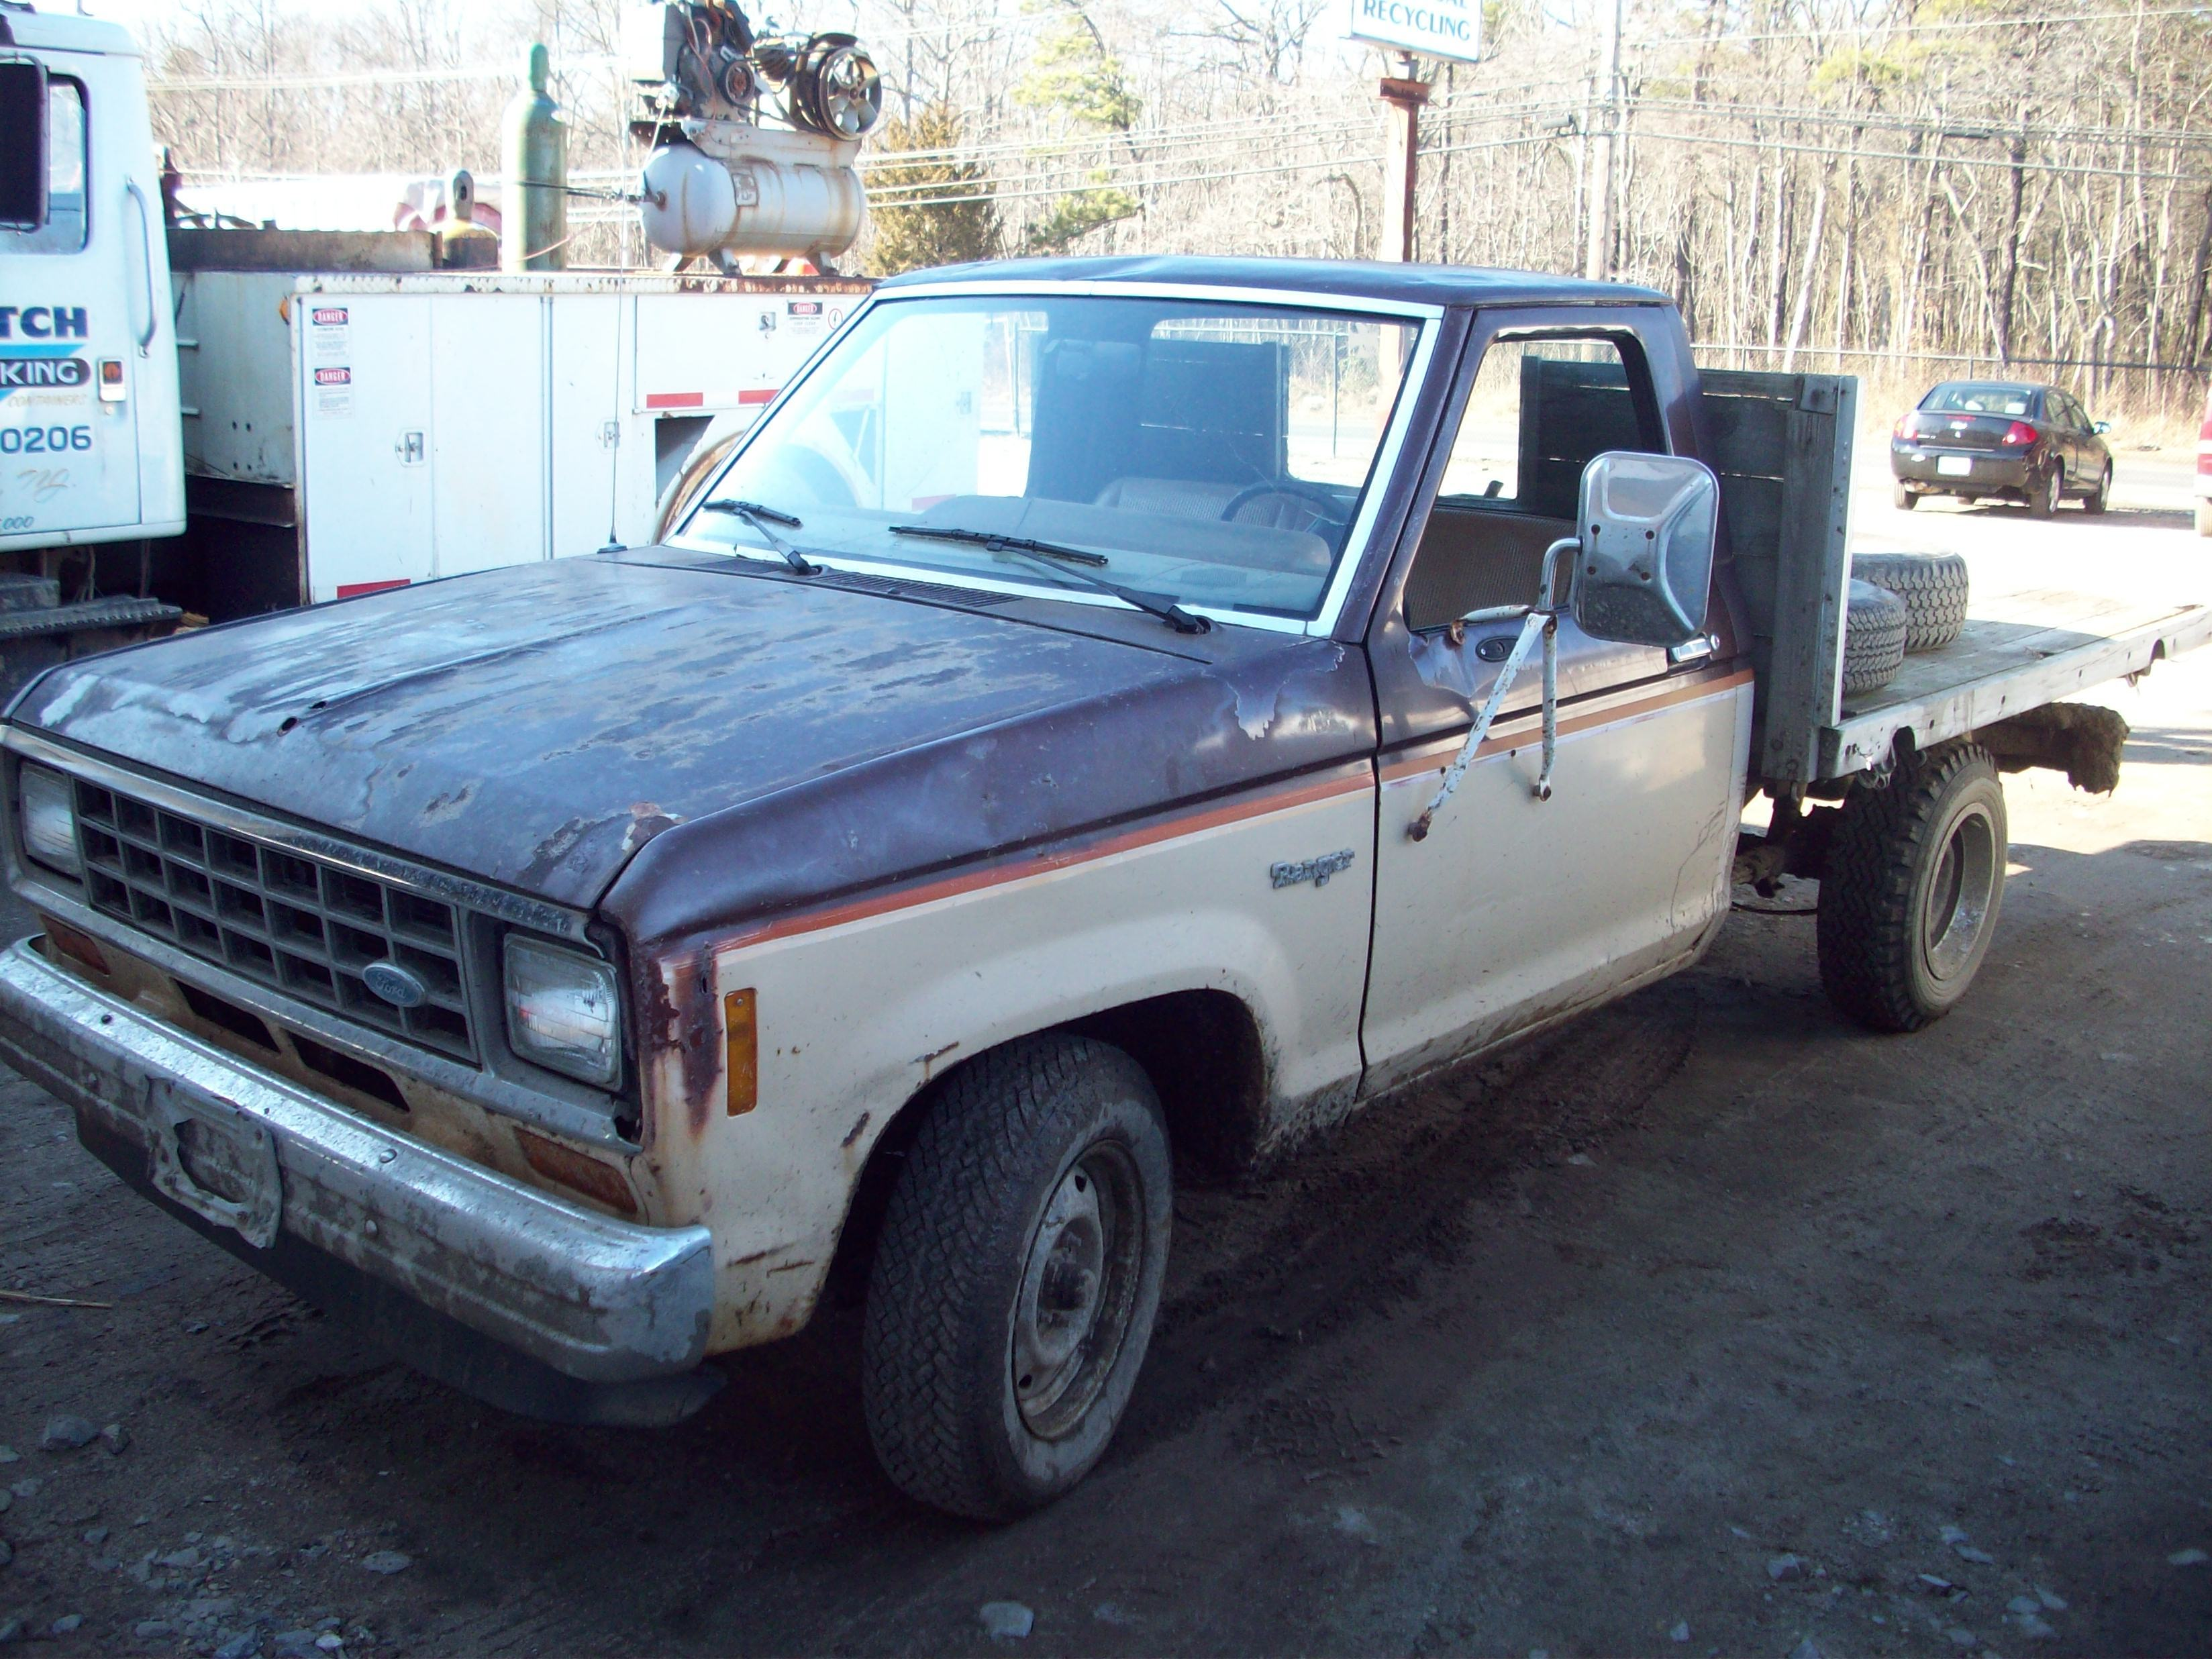 Wrecking Crew 1966 Ford F150 Regular Cab Specs Photos Modification 1988 F 150 Basic Ignition Wiring 4 9 300 1983 Ranger